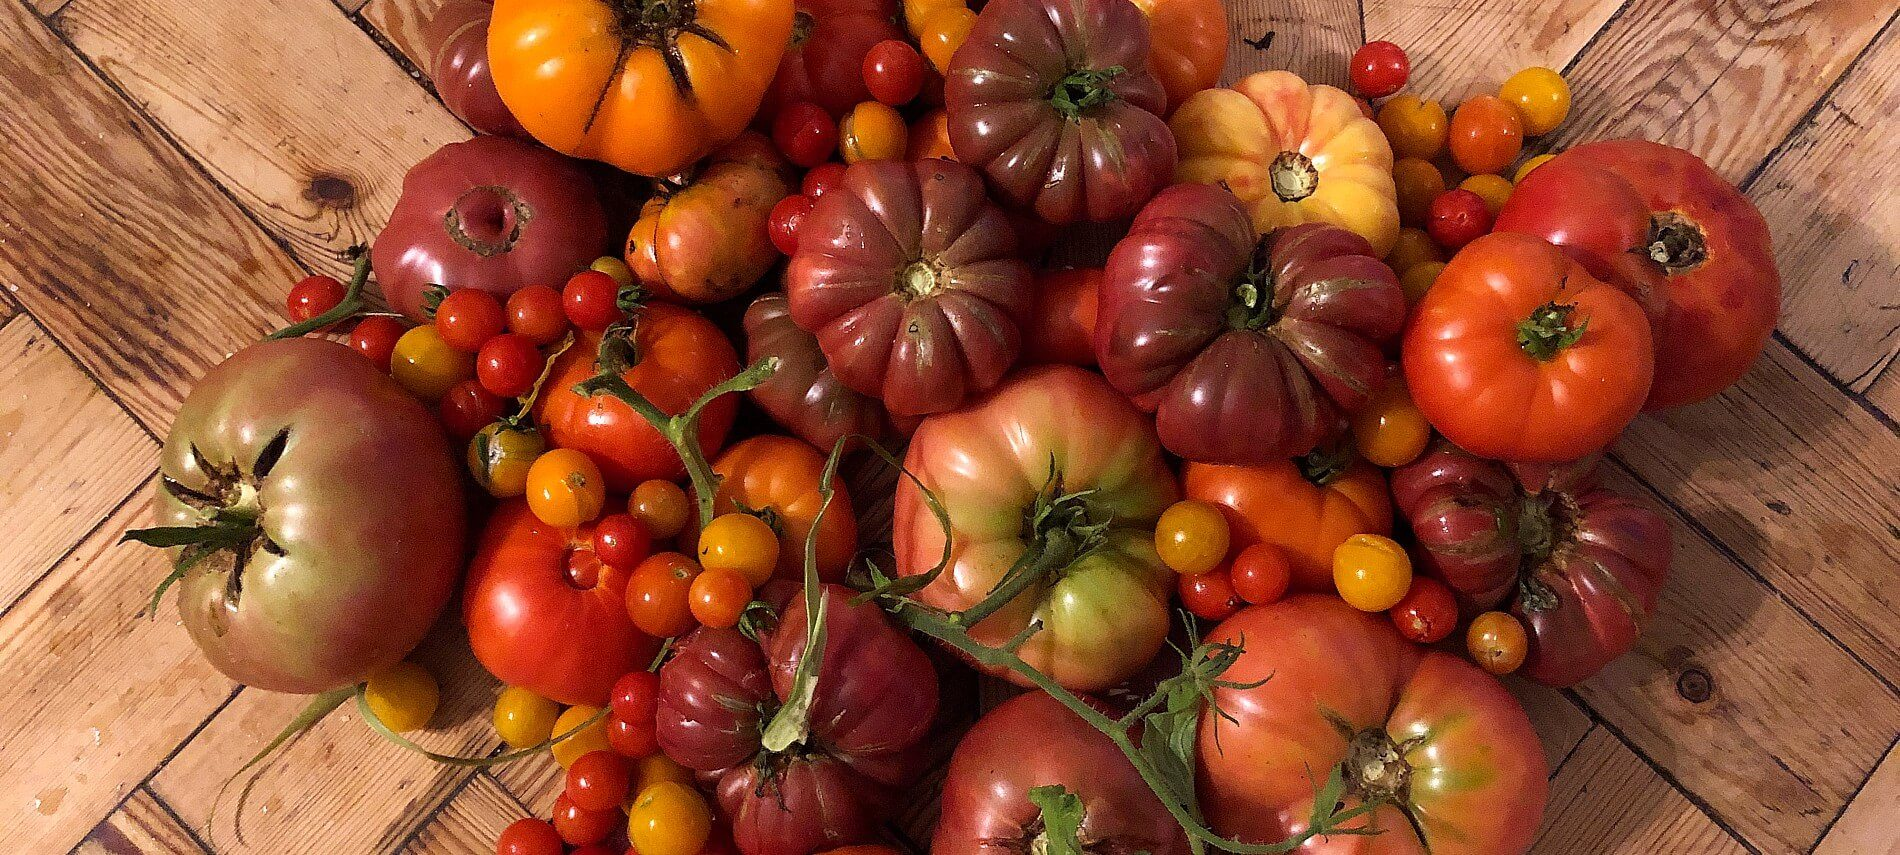 Large variety of fresh garden tomatoes on a brown butcher block countertop